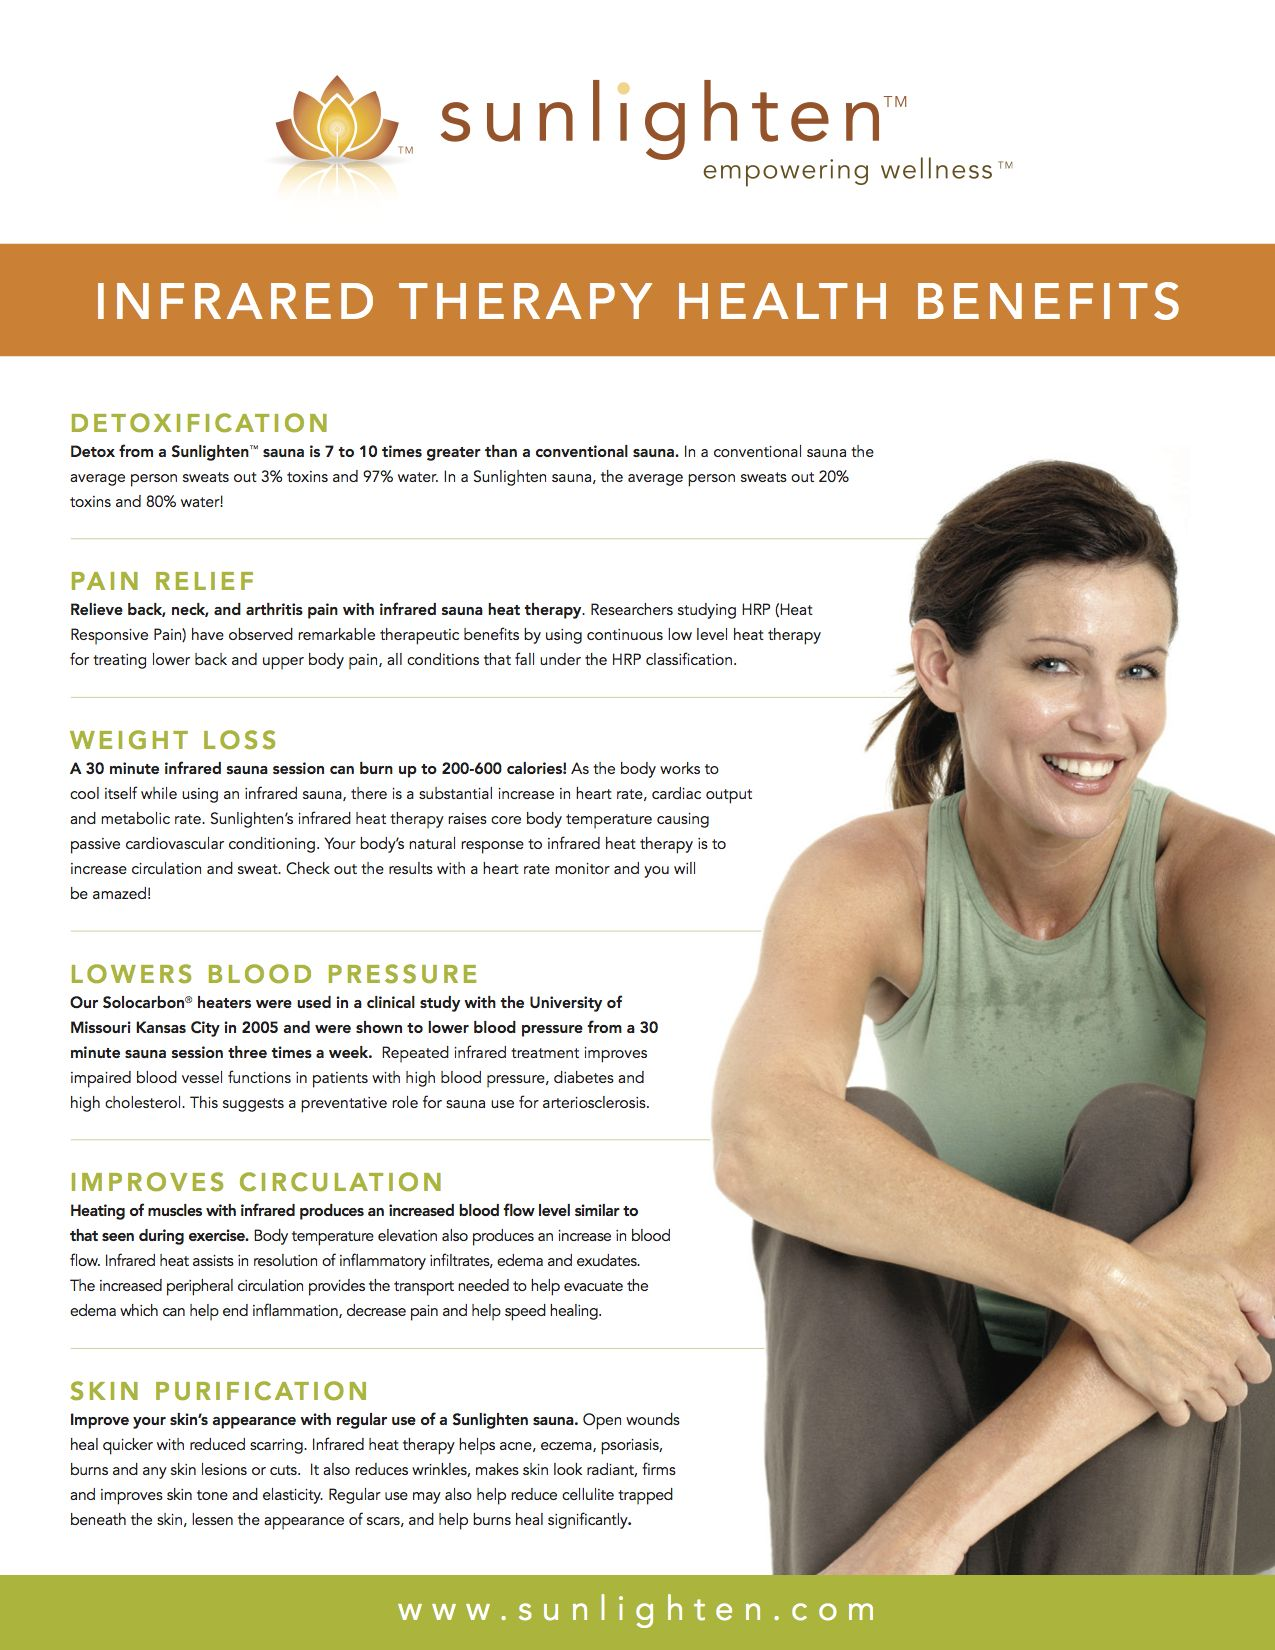 the Health Benefits of Infrared Therapy wwwsunlighten